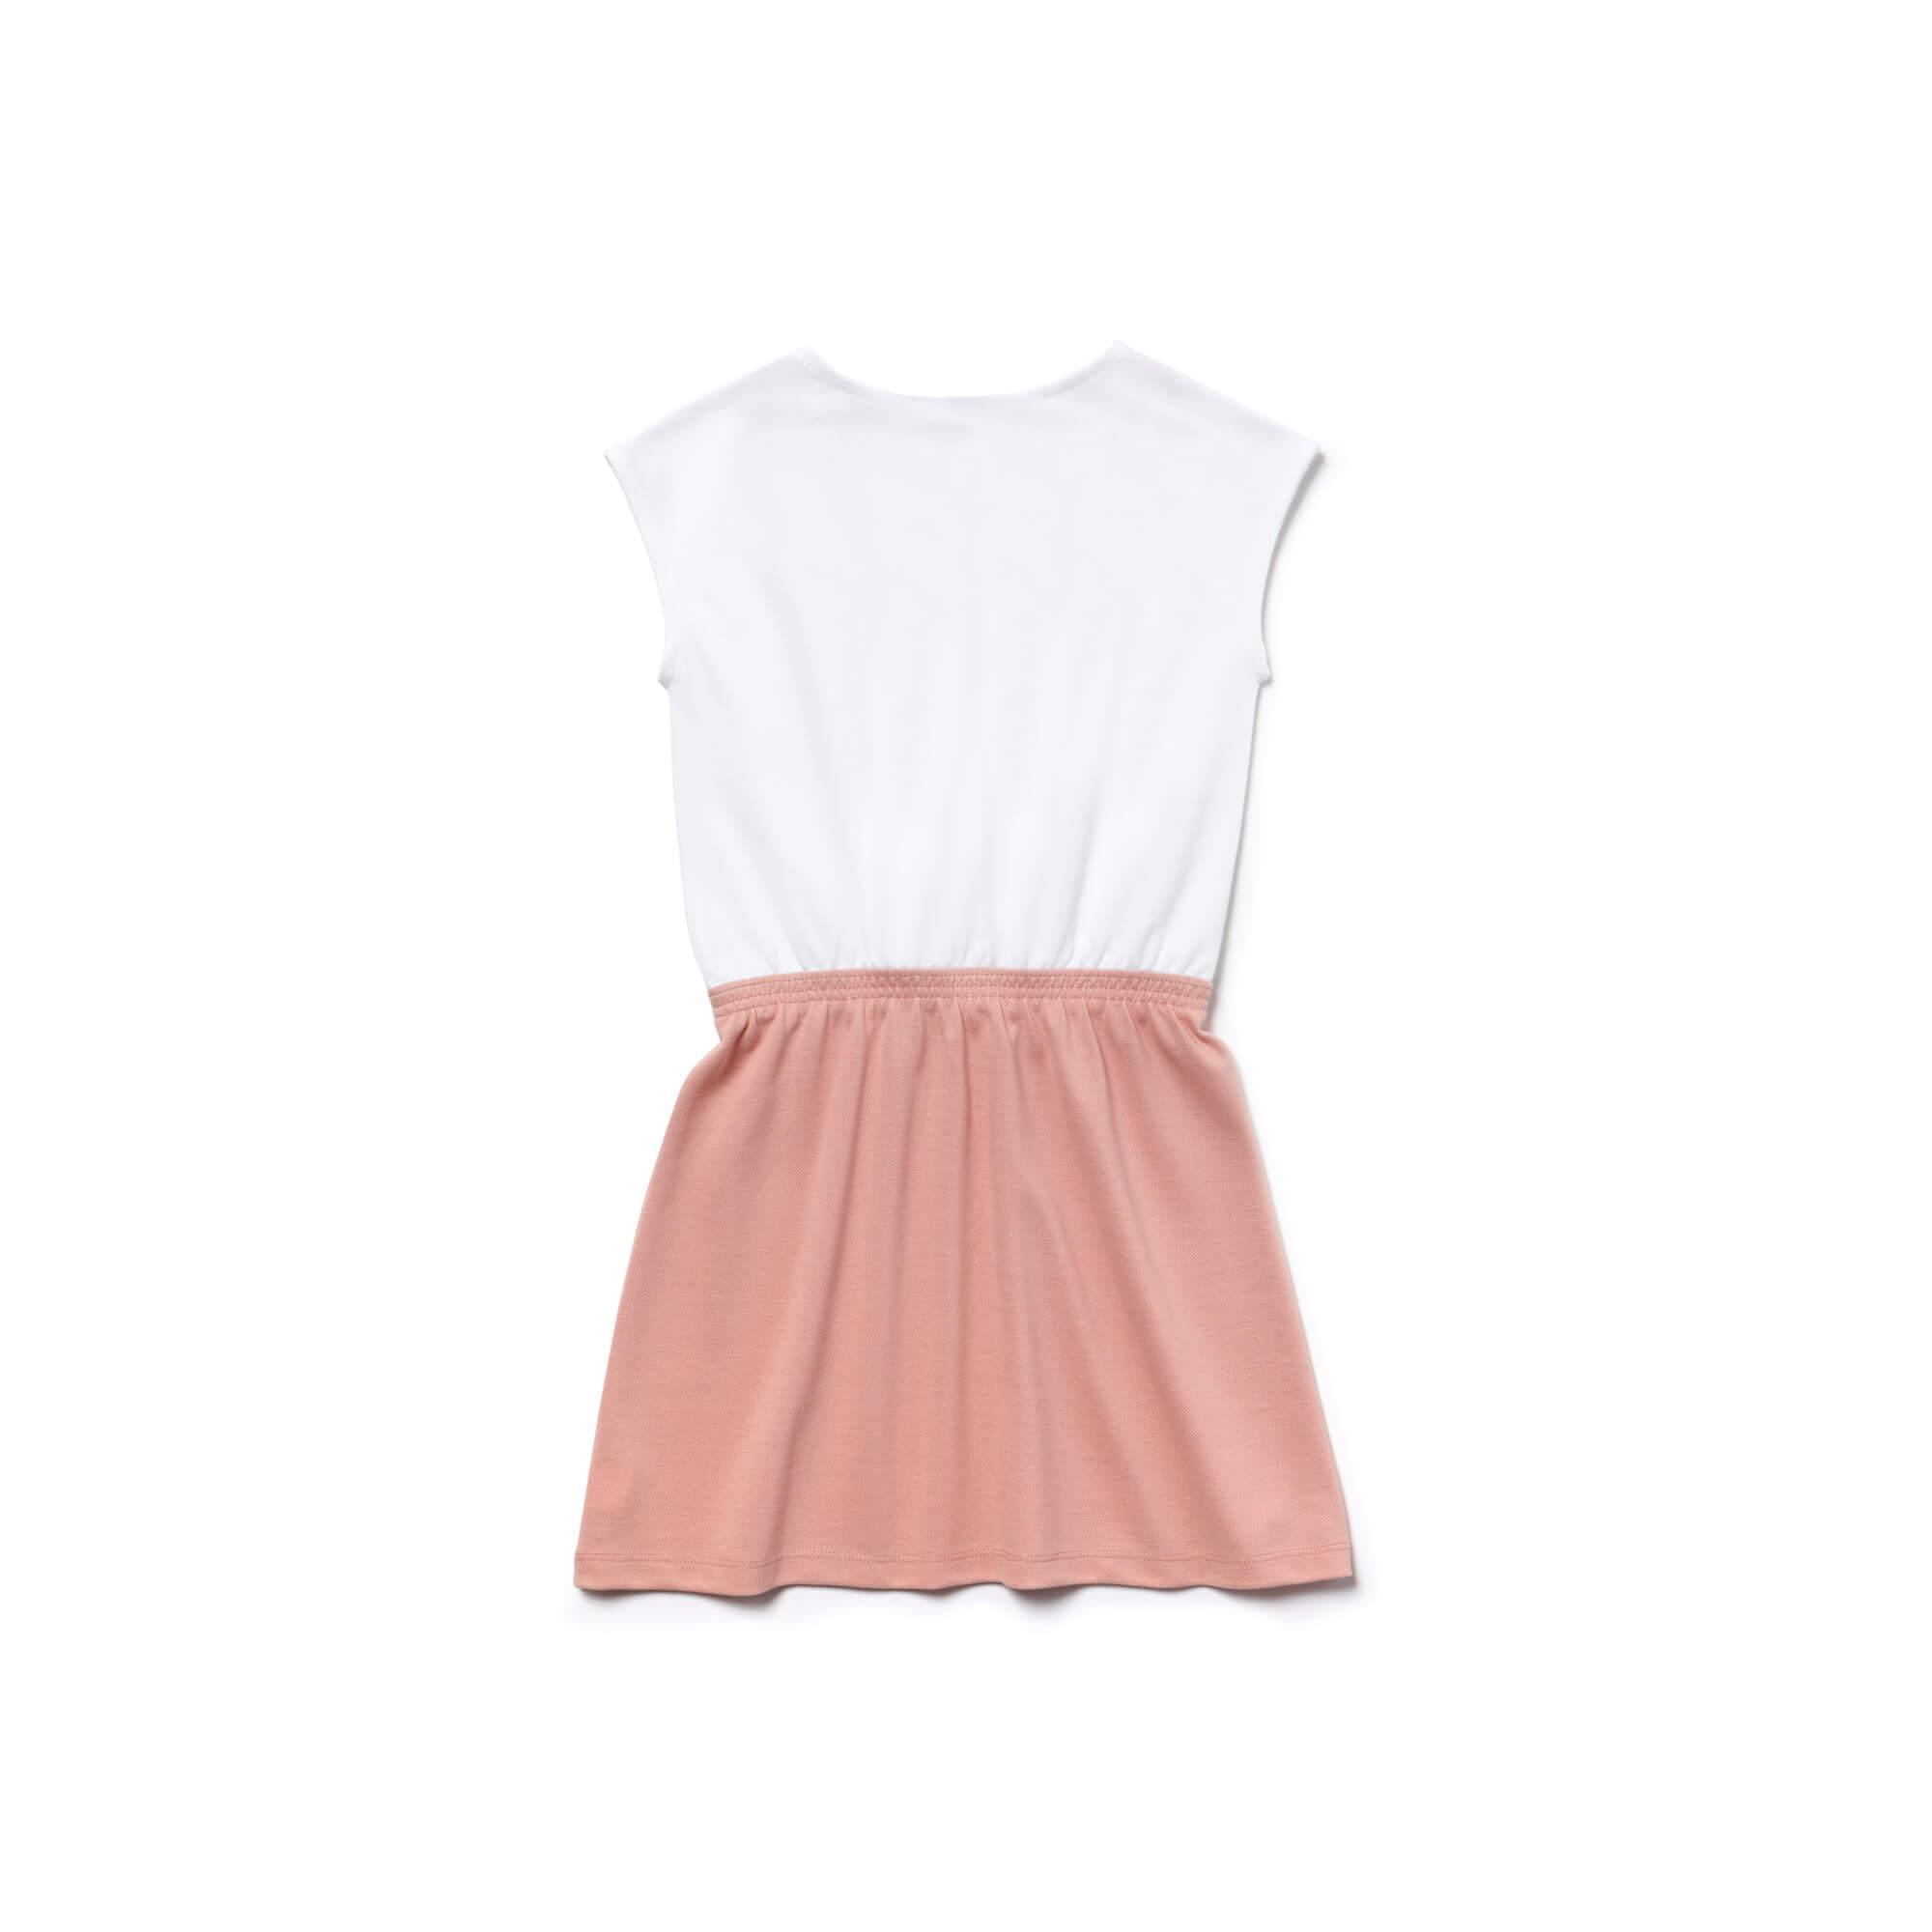 Lacoste Girls' Dress